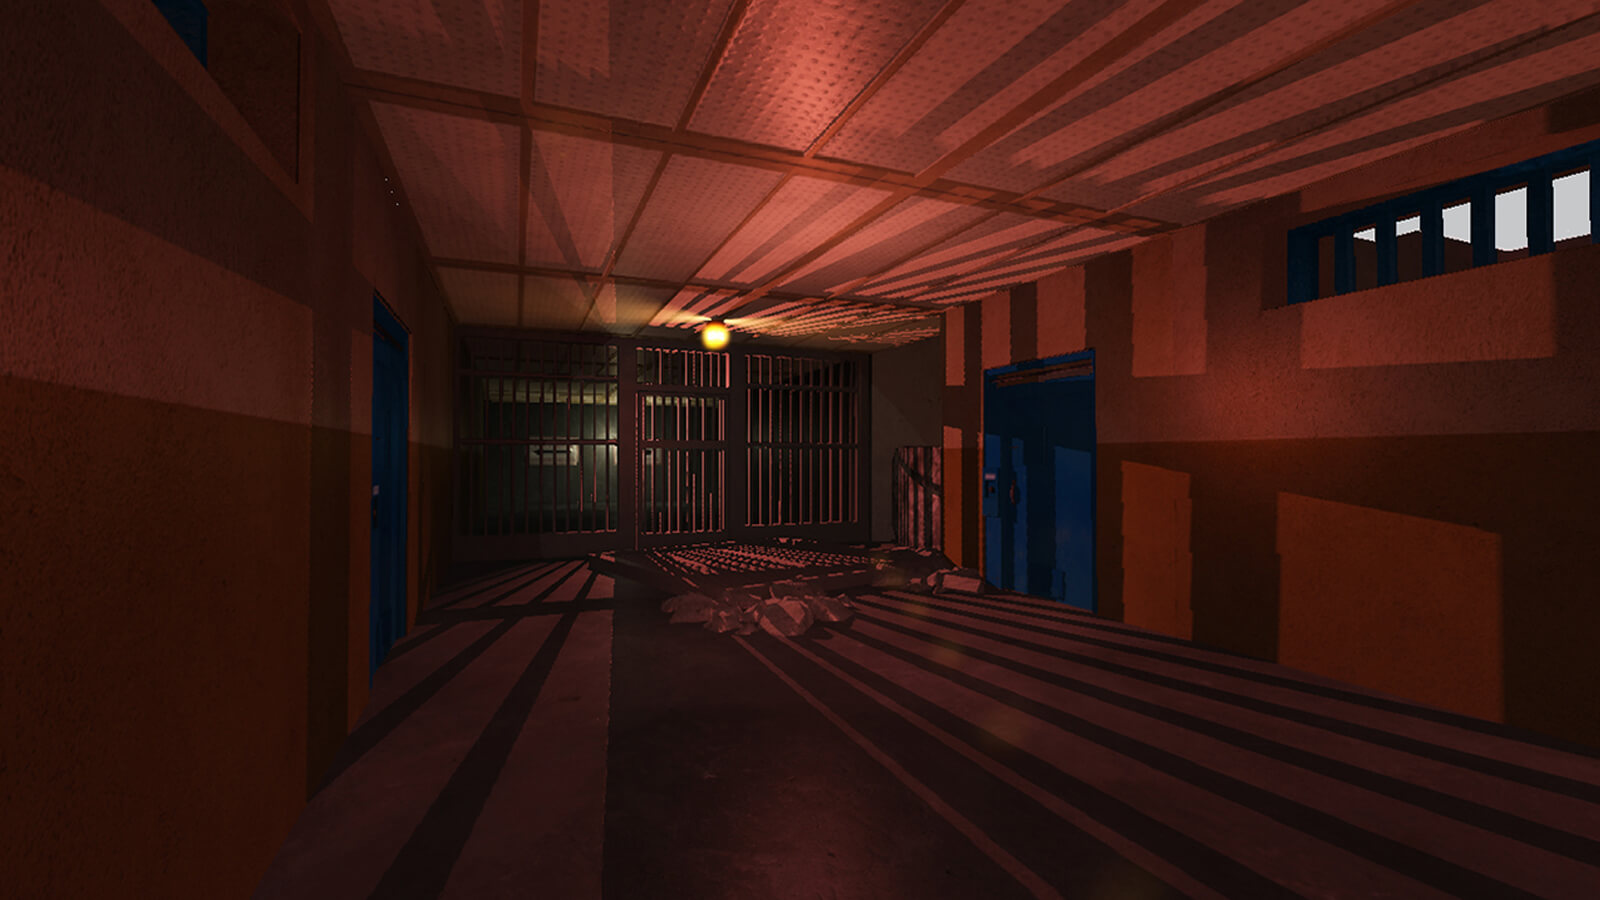 A dark hallway ending at a closed off by a barred door casting long reddish shadows across the floor and ceiling